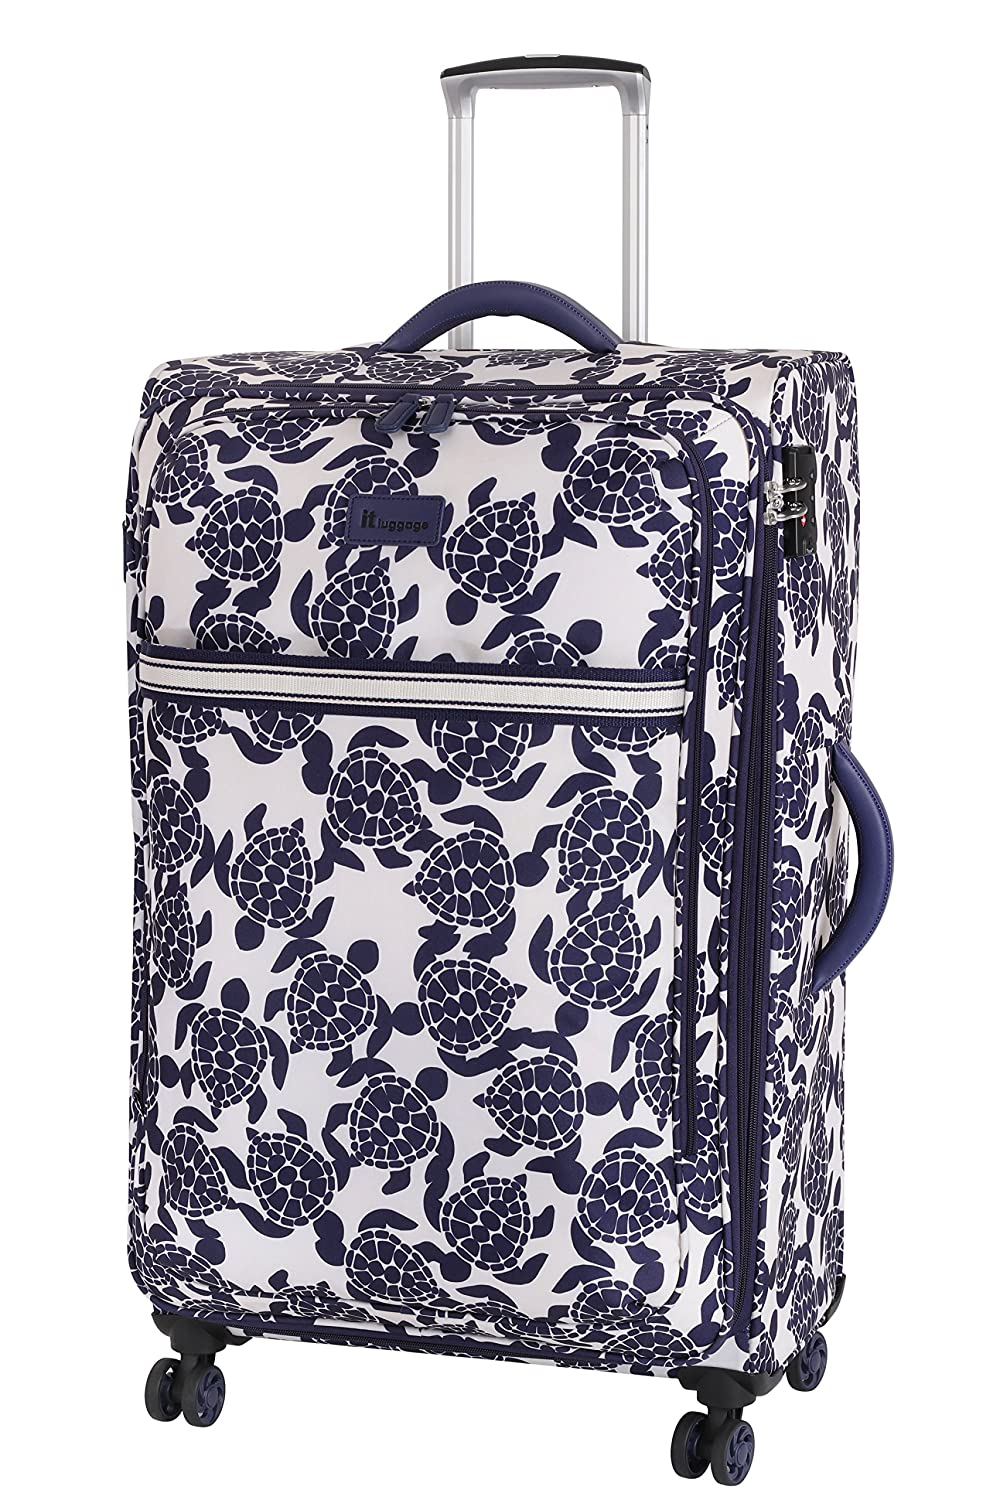 it luggage Nautical Turtles 8 Wheel Lightweight Semi Expander Suitcase Large Maleta, 77 cm, 111 Liters, Multicolor (Navy/Cream Sea Print)